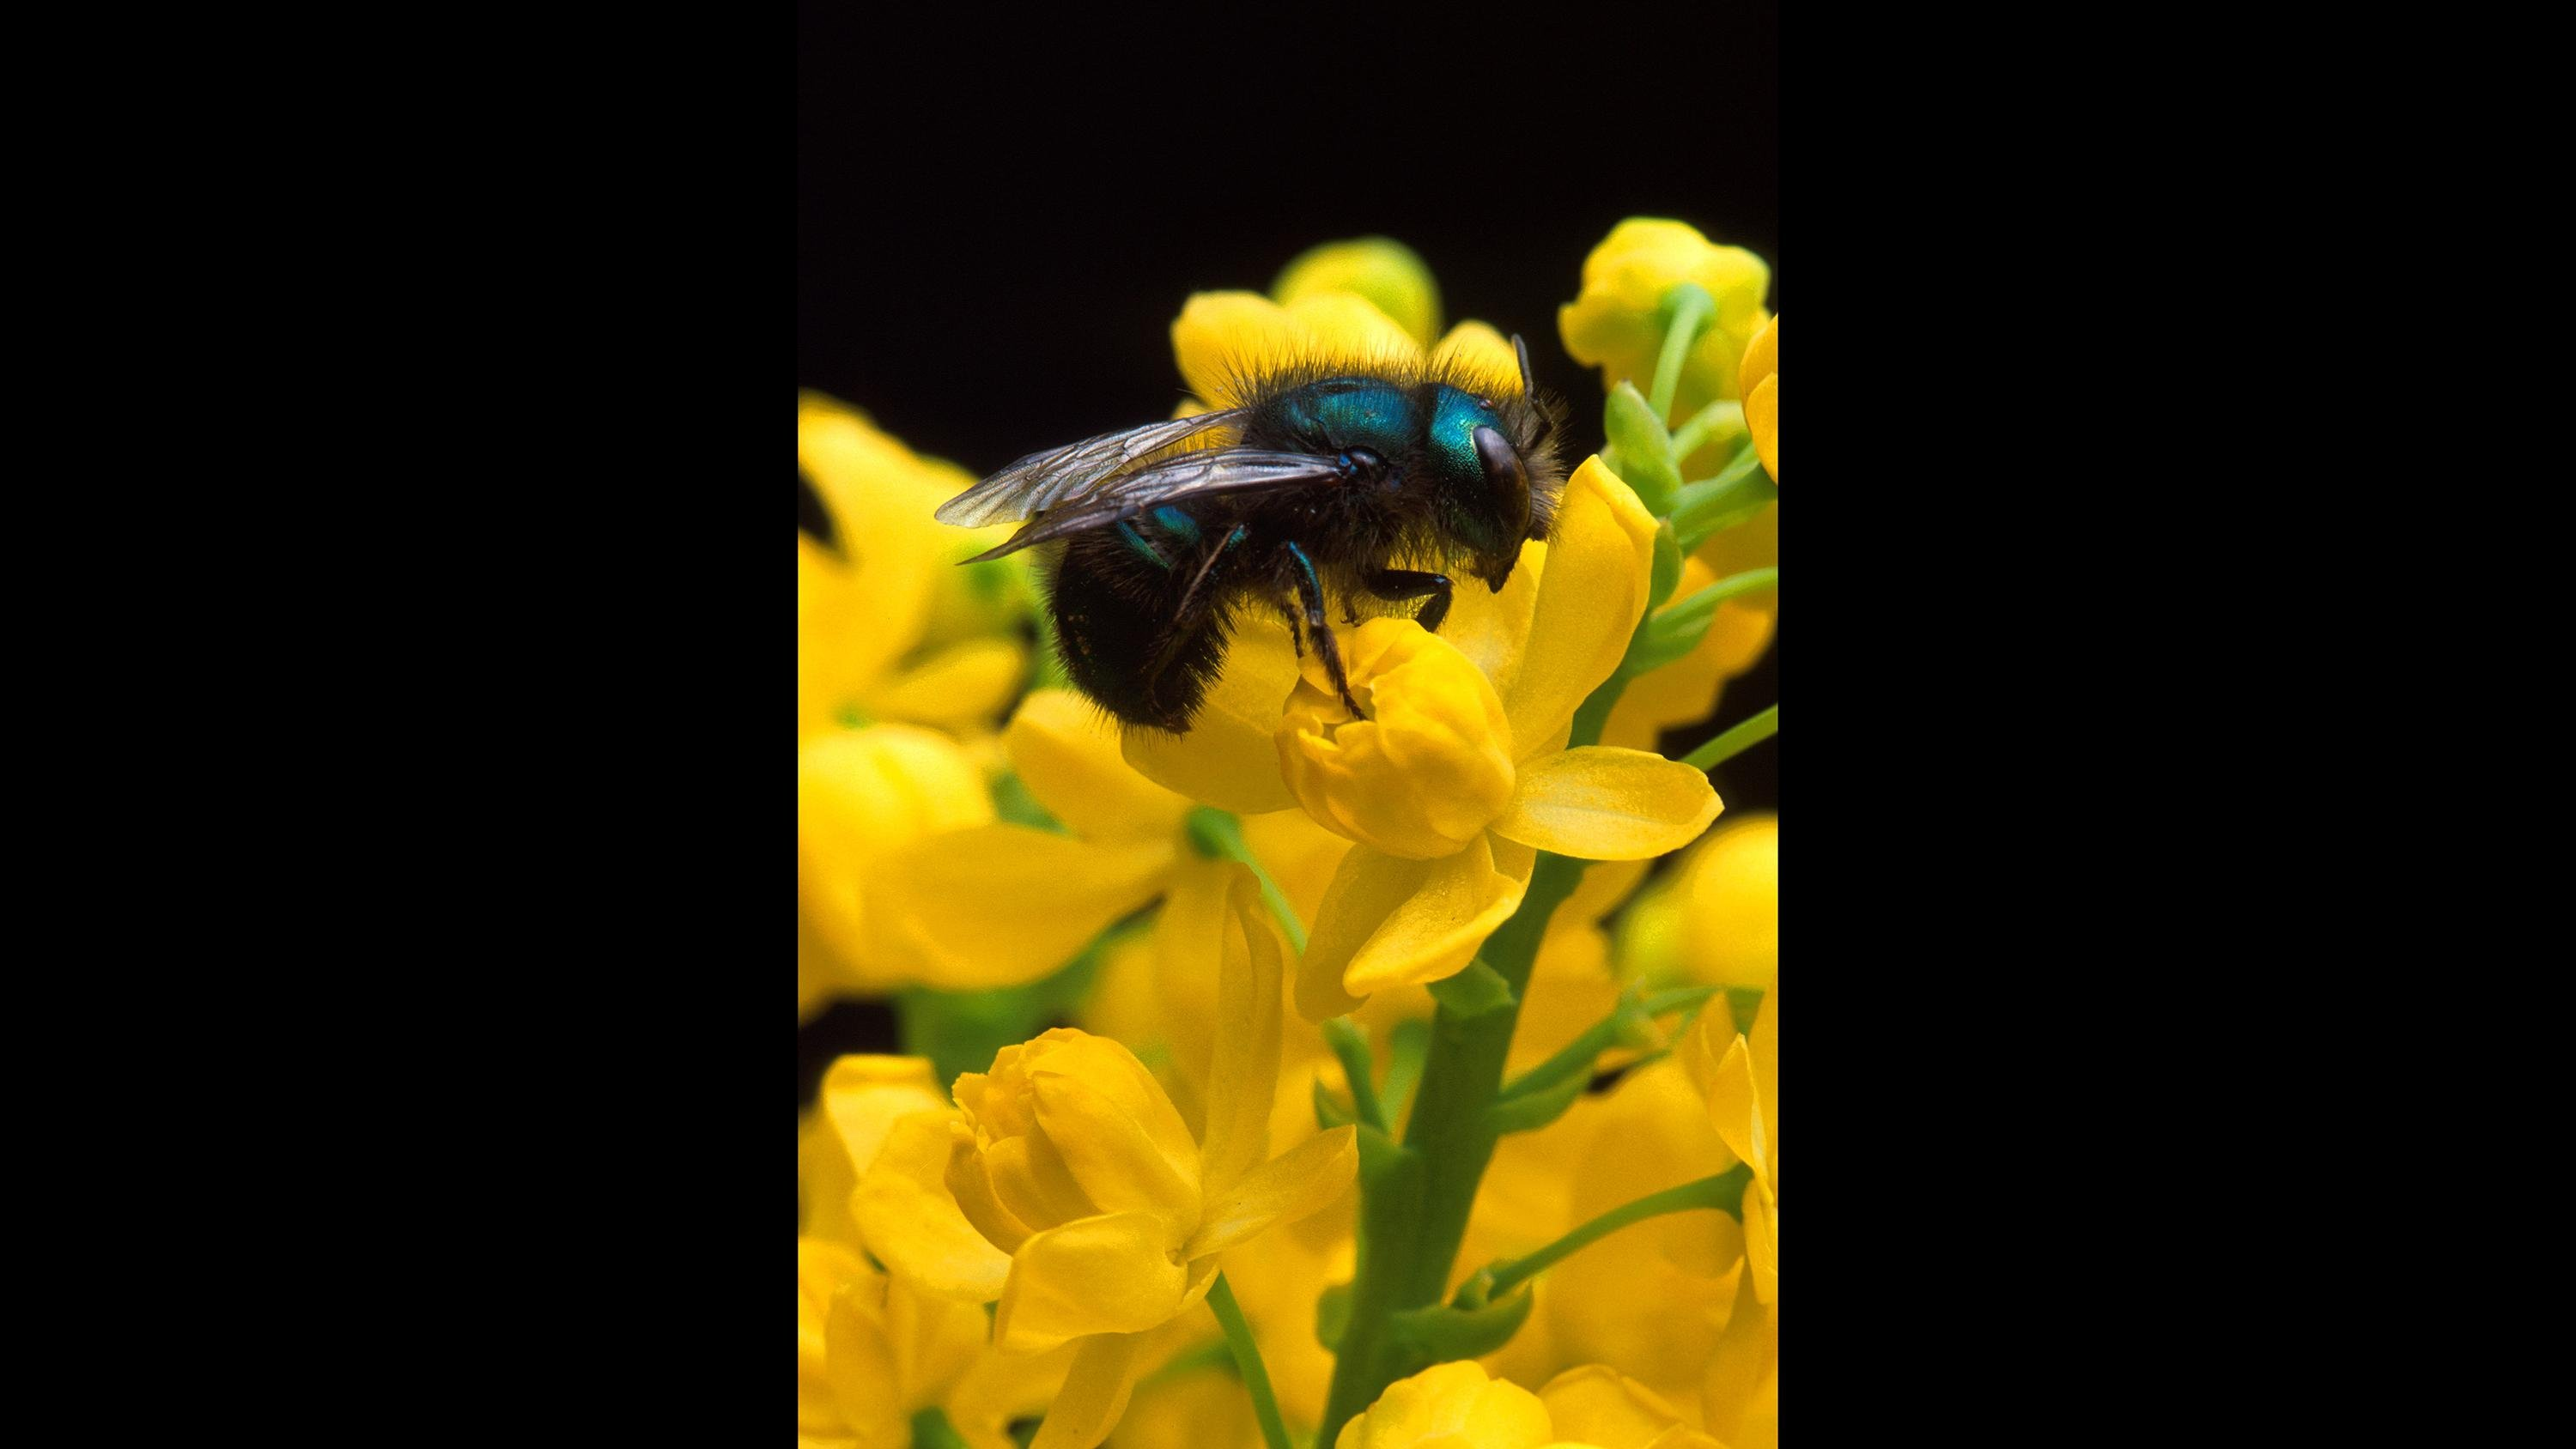 Northwestern's Paul CaraDonna studied the impact of increased temperatures on mason bees. (Jack Dykinga)